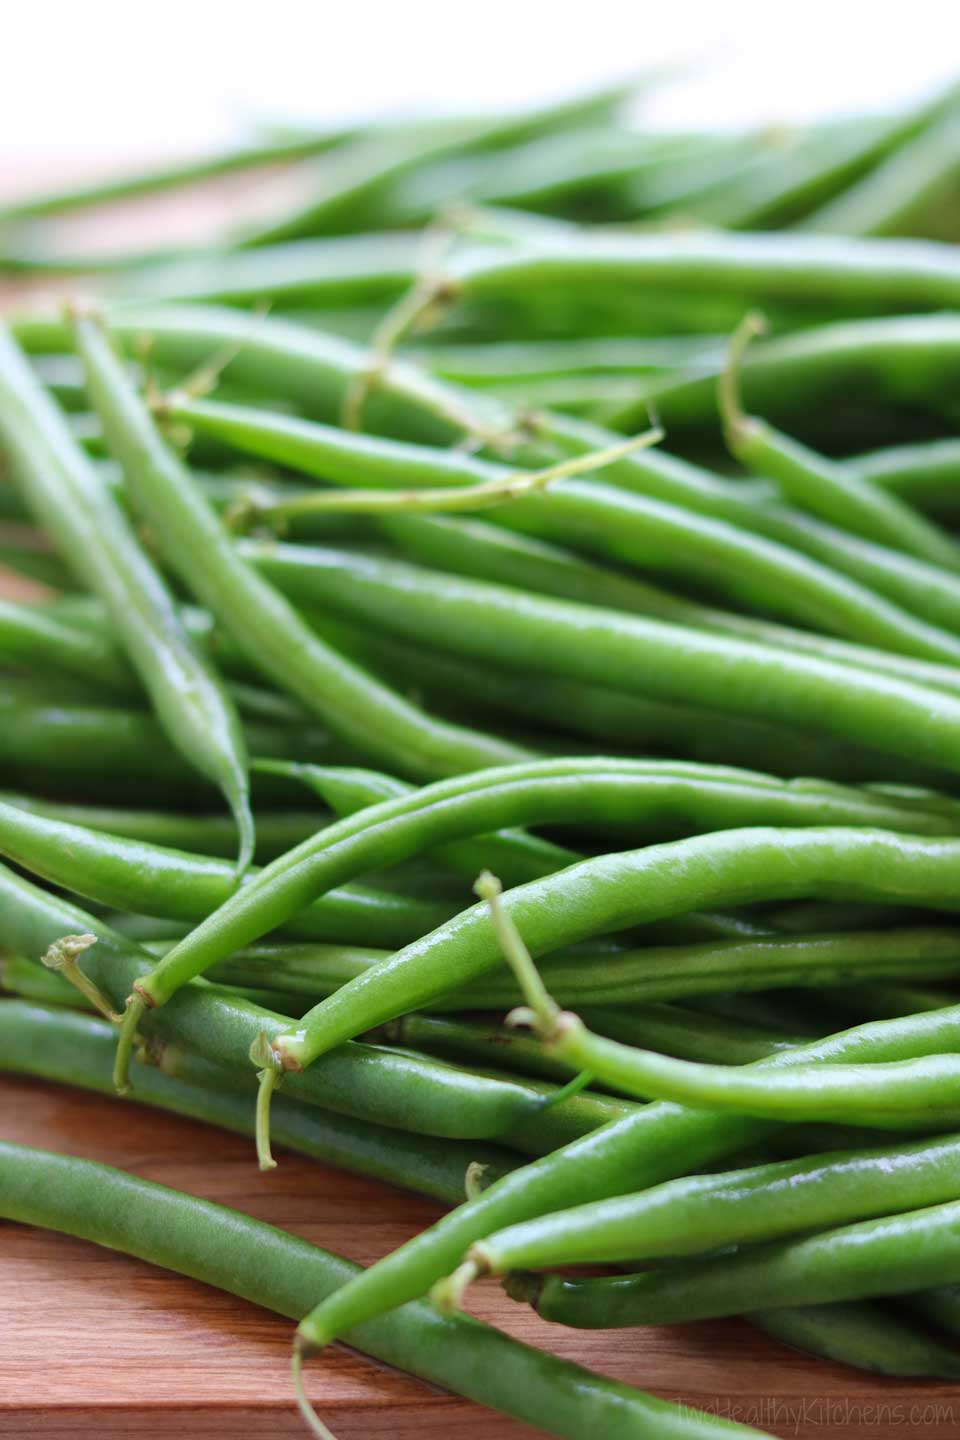 When you need a fresh green bean recipe, these simple Blistered Green Beans are a perfect quick solution! This recipe truly lets the green beans shine through, but with deep, delicious flavors you'd never get from boiling or steaming!